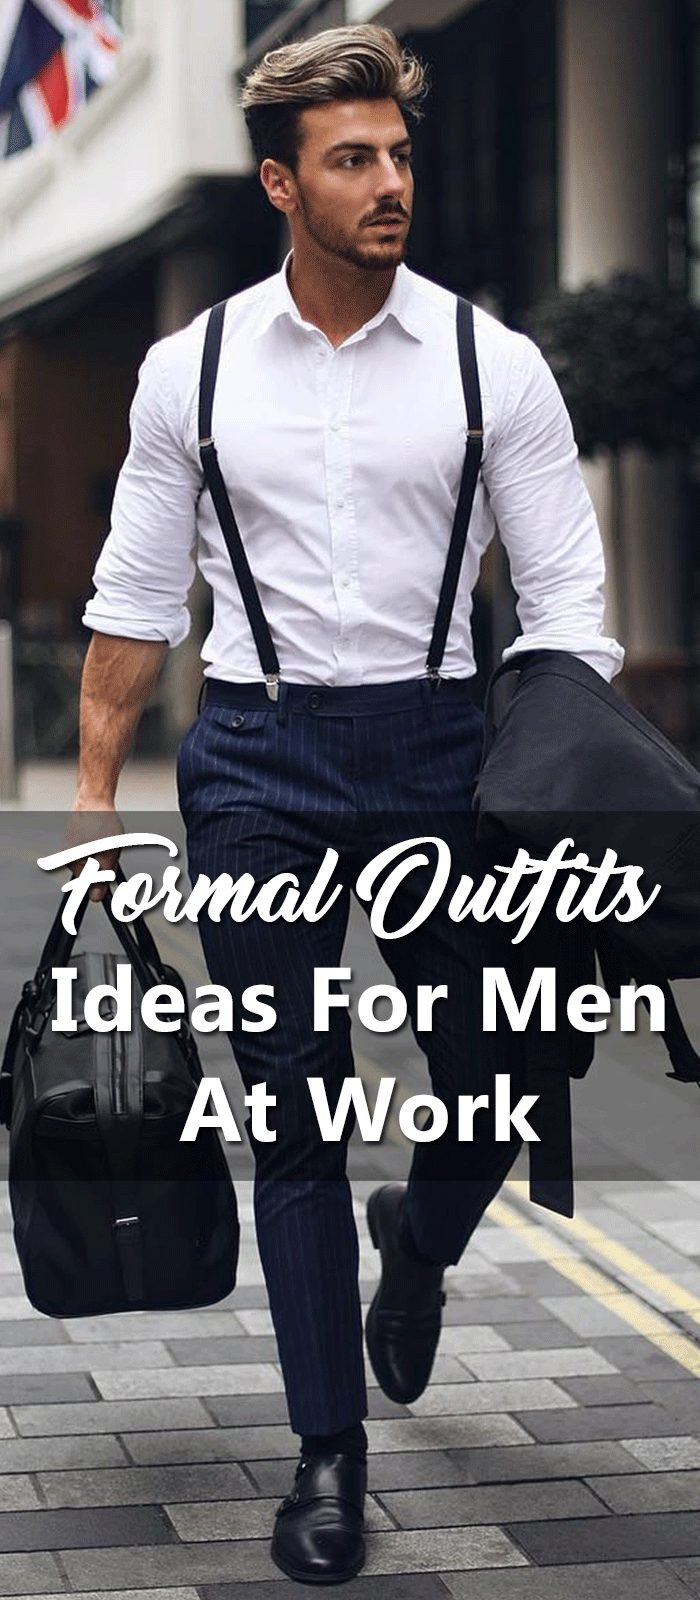 Formal Outfits Ideas For Men At Work